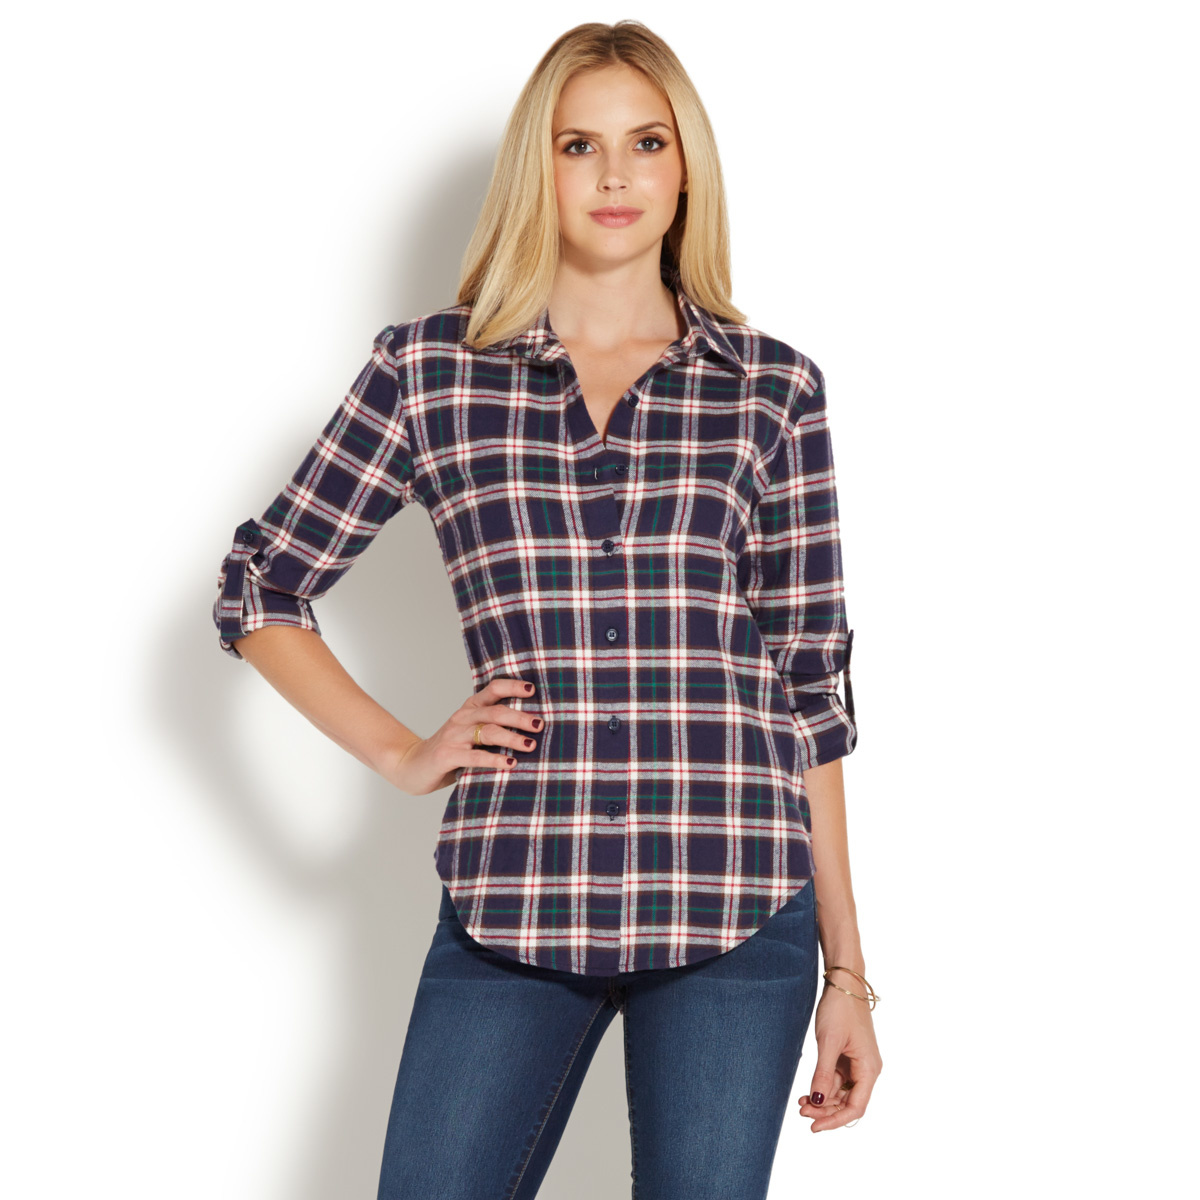 Boyfriend plaid shirt shoedazzle for Buy plaid shirts online